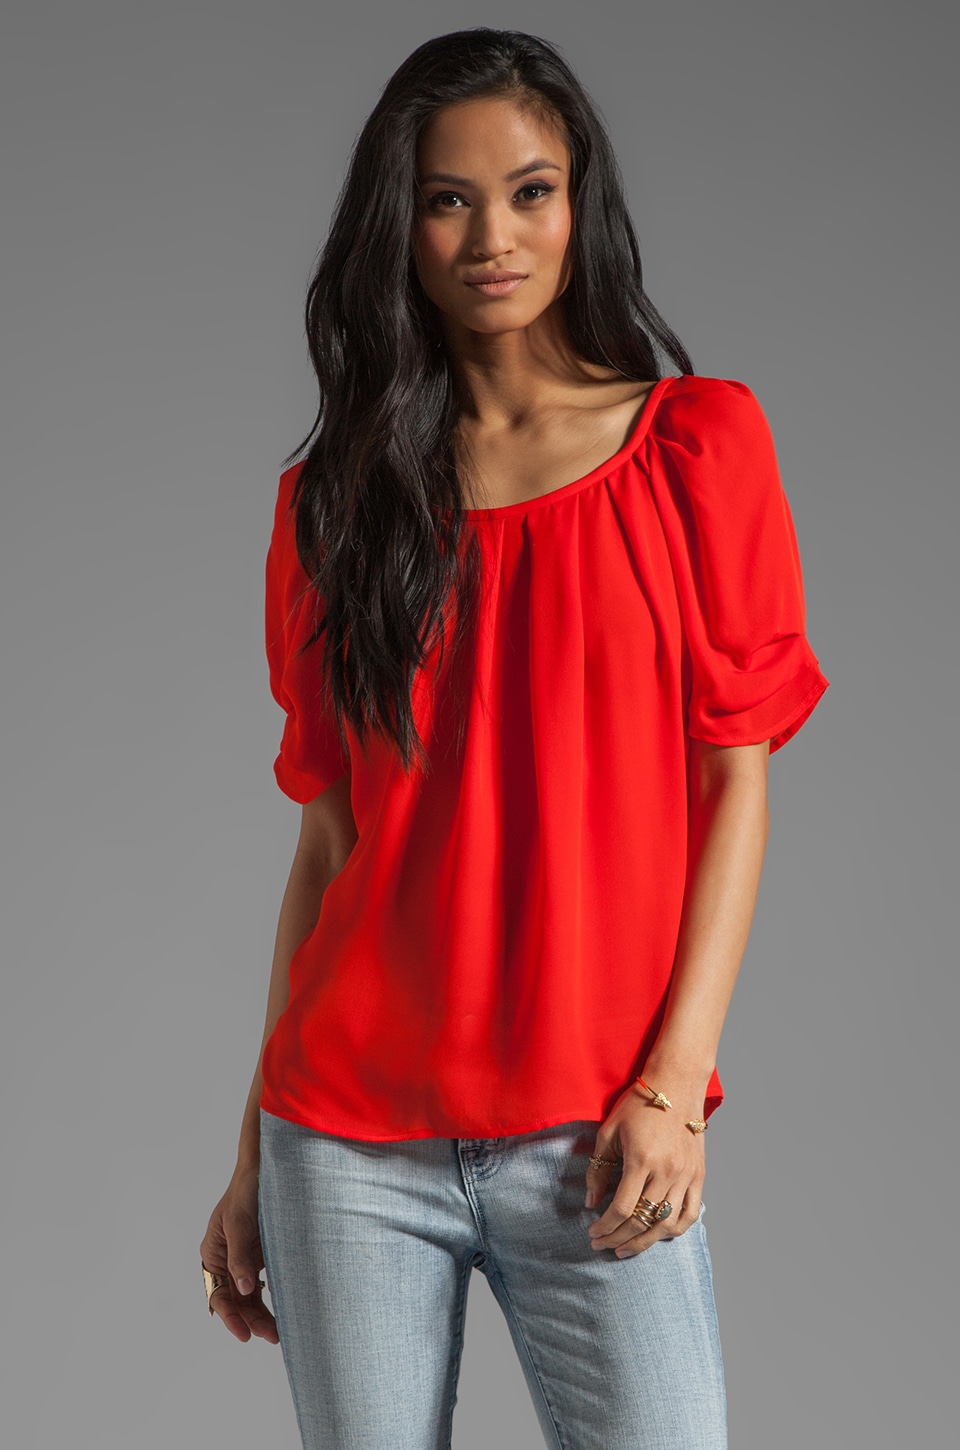 Joie Eleanor Silk Top in Fiery Red